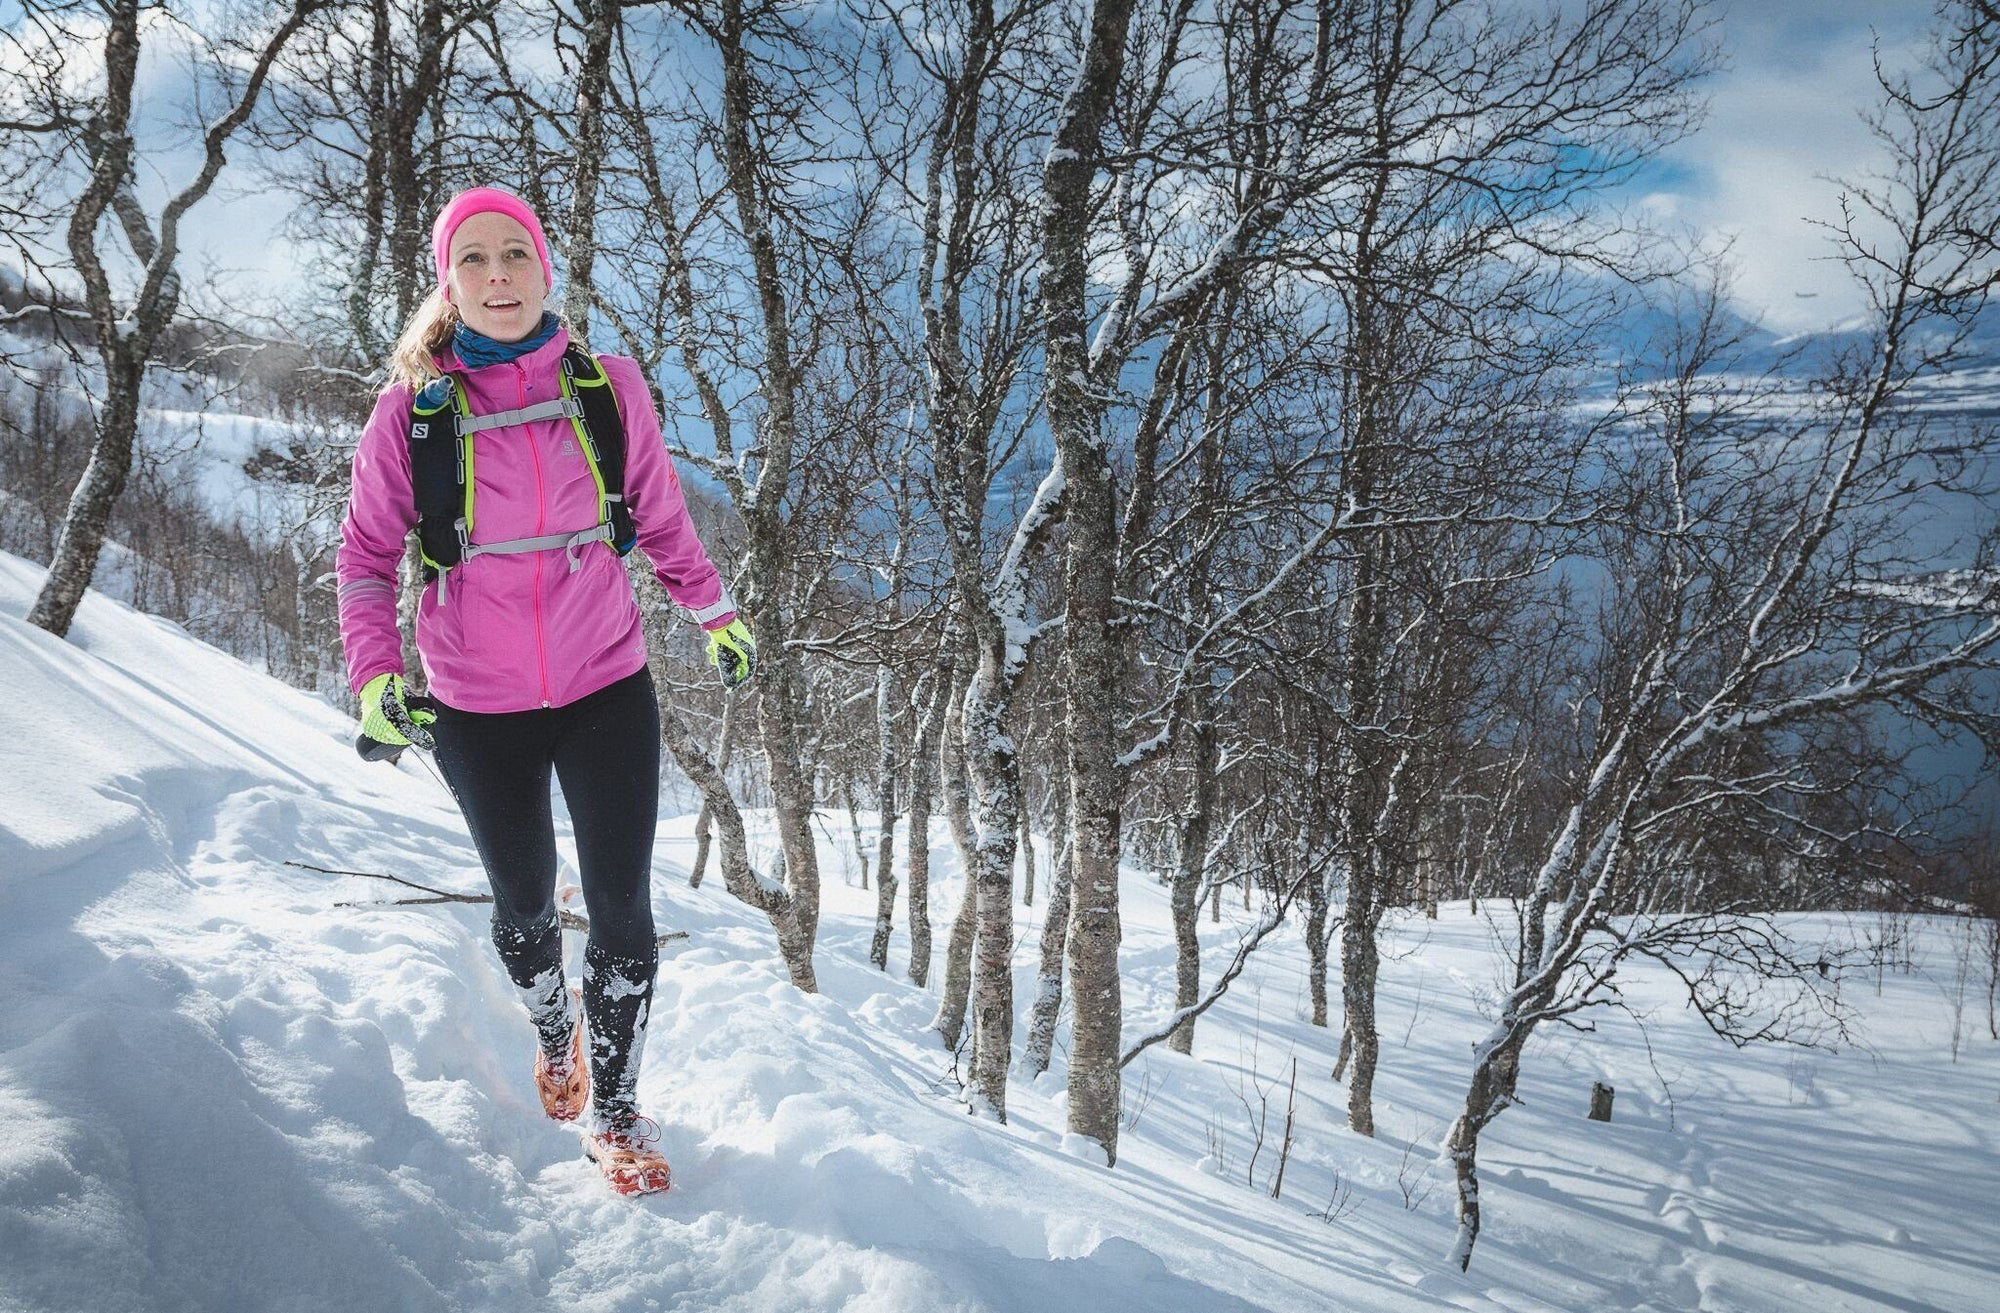 How to Prepare for Winter Running - Story of Saana, a Runner from Tromsø